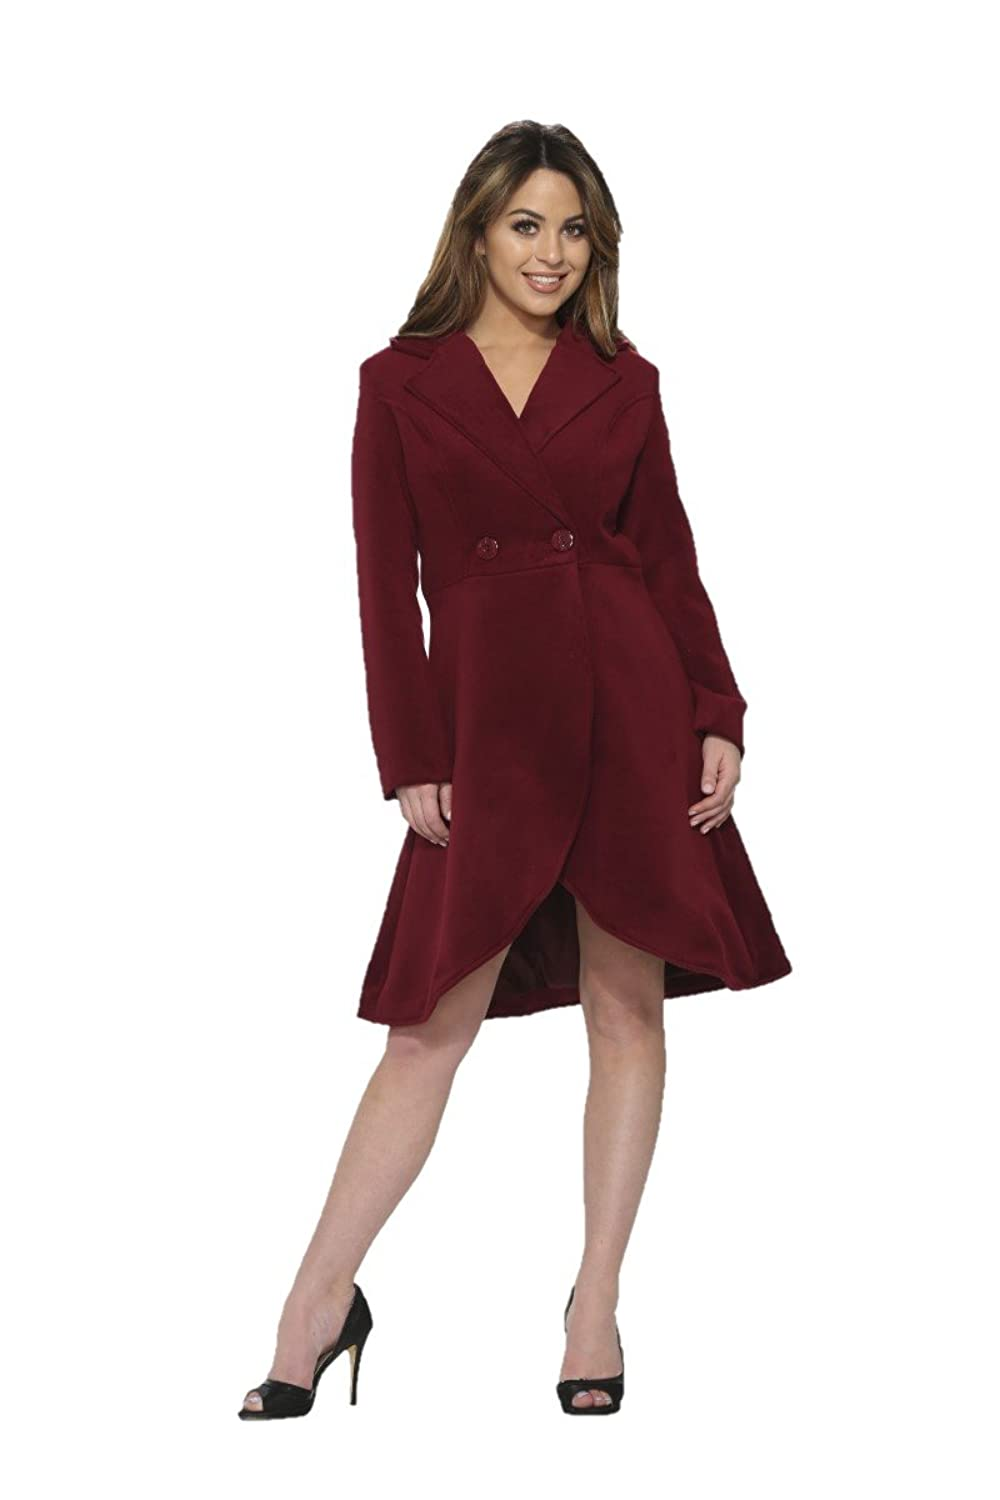 1950s Jackets, Coats, Bolero | Swing, Pin Up, Rockabilly Hearts & Roses Katherine Coat in Burgundy (Shipped from The US US Sizes) $64.88 AT vintagedancer.com